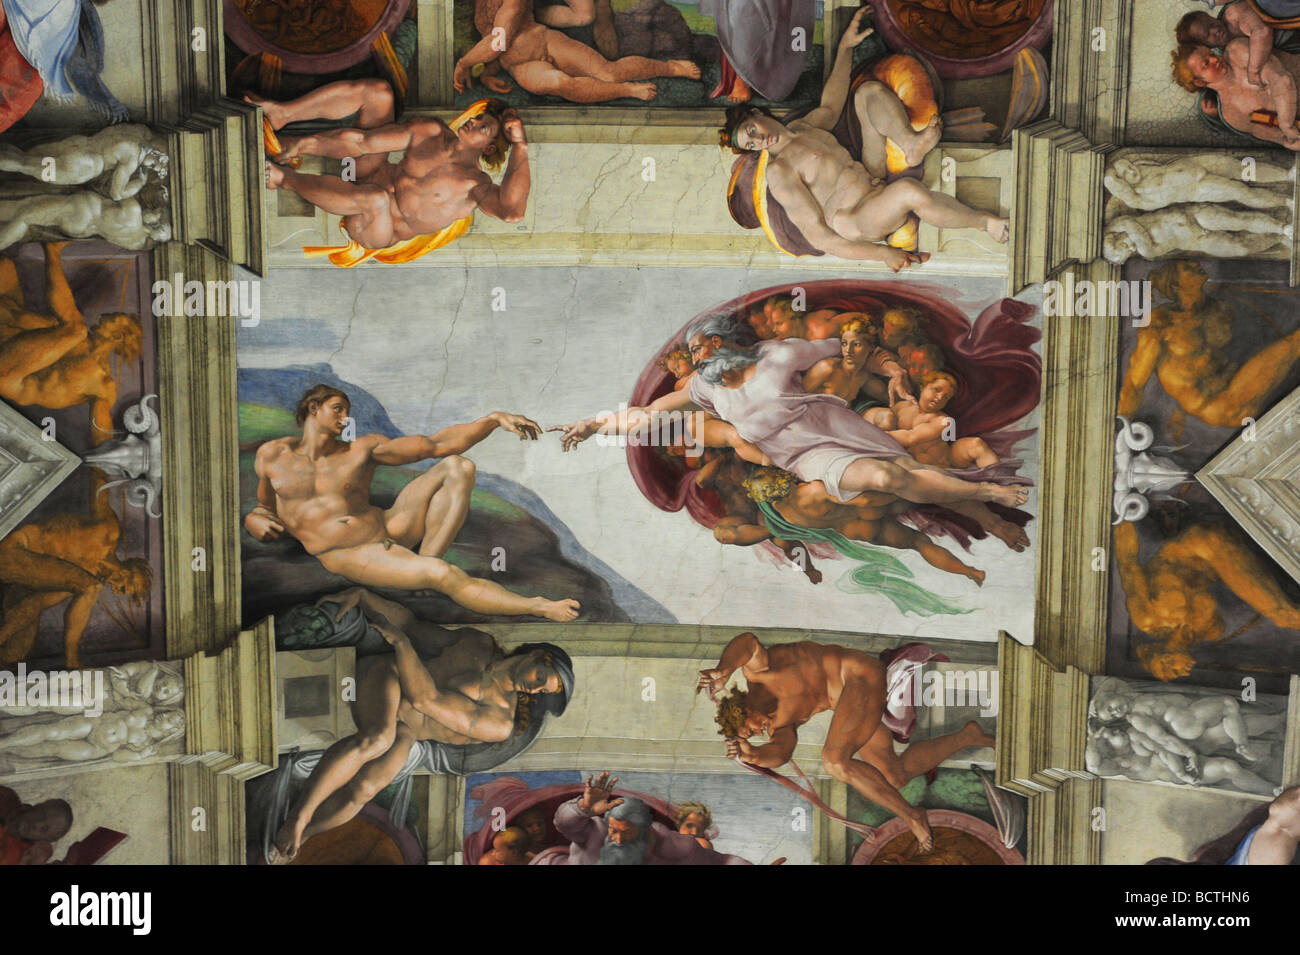 europe-vatican-city-vatican-museum-the-creation-of-adam-by-michelangelo-BCTHN6.jpg